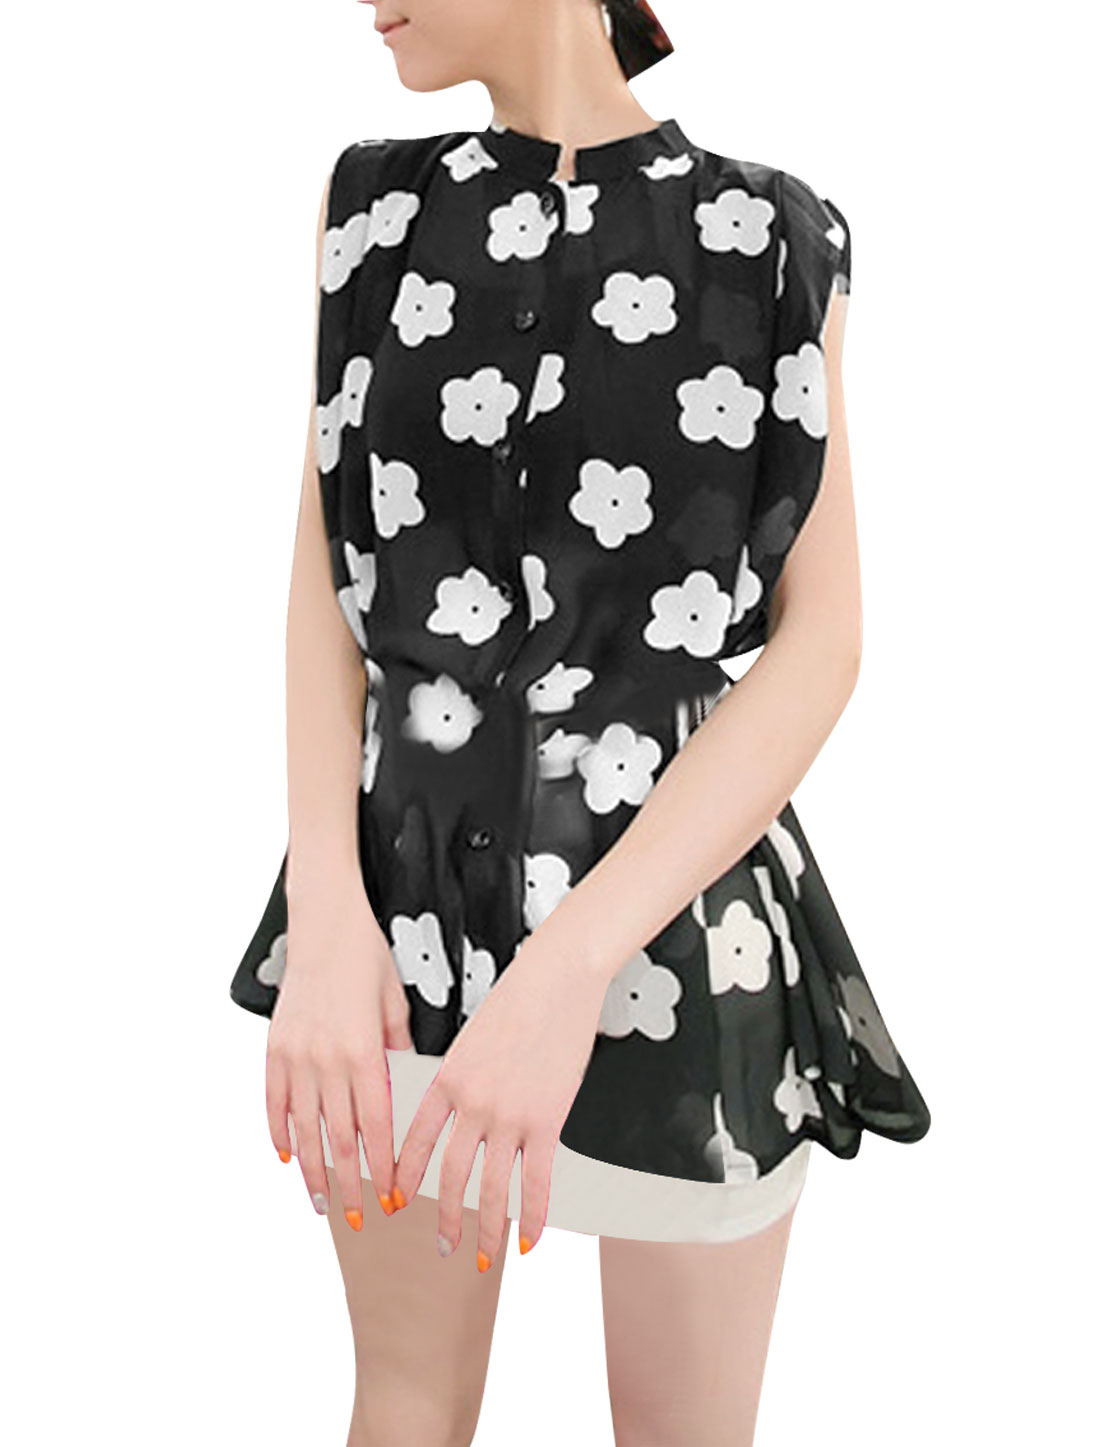 Lady Stylish Sleeveless Flowers Pattern Black White Tunic Blouse S